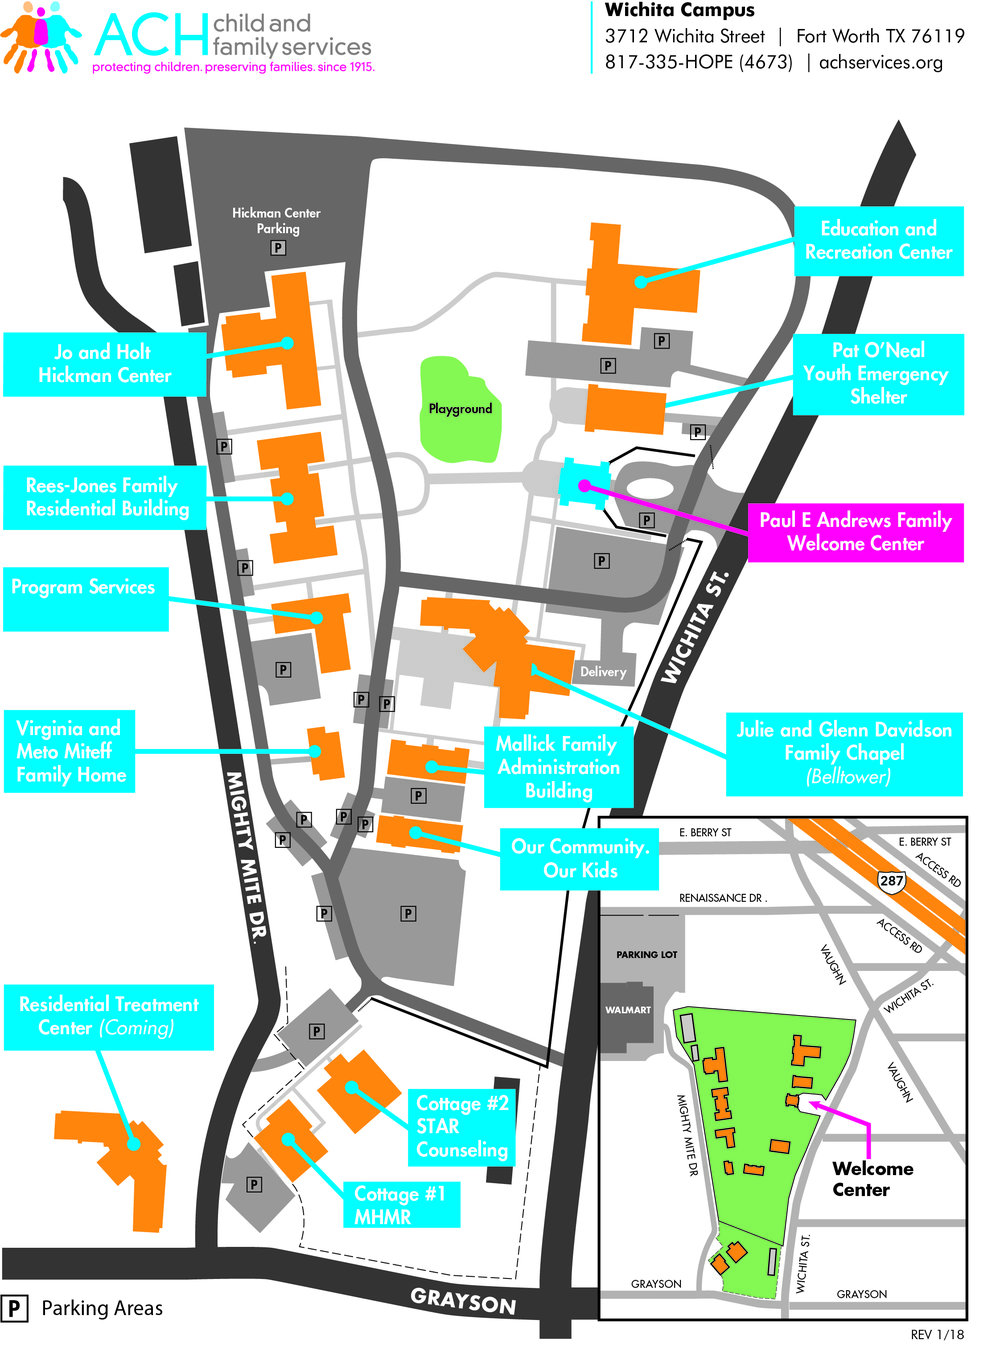 2018-Jan_Campus Map_8.5x11.jpg